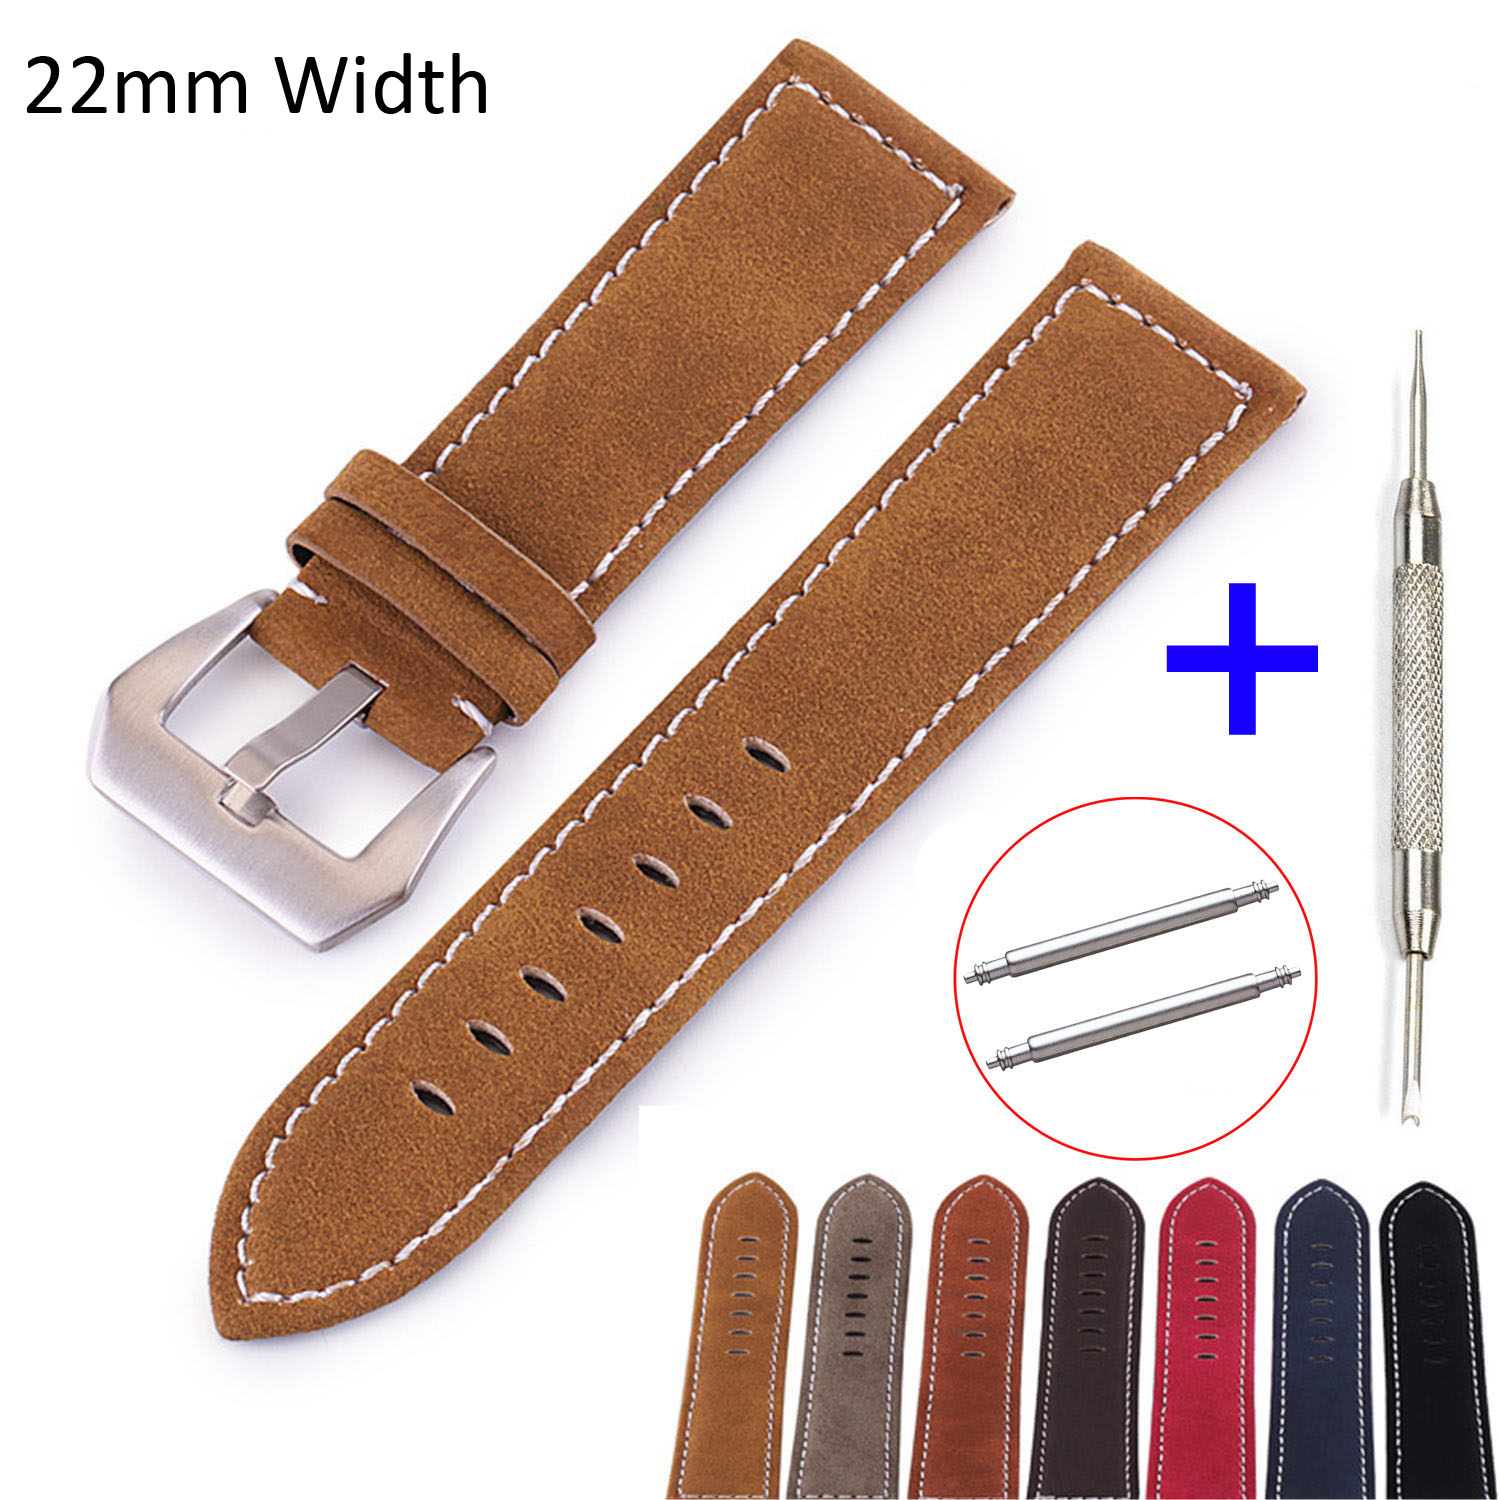 22mm Amazfit Strap for Xiaomi Huami Amazfit Pace Stratos 2 Strap Leather Strap Bracelet Amazfit 2 Band for Samsung Gear S3 amazfit leather bracelet watch band 22mm for xiaomi huami amazfit pace stratos 2 correa wrist strap for samsung gear frontier s3